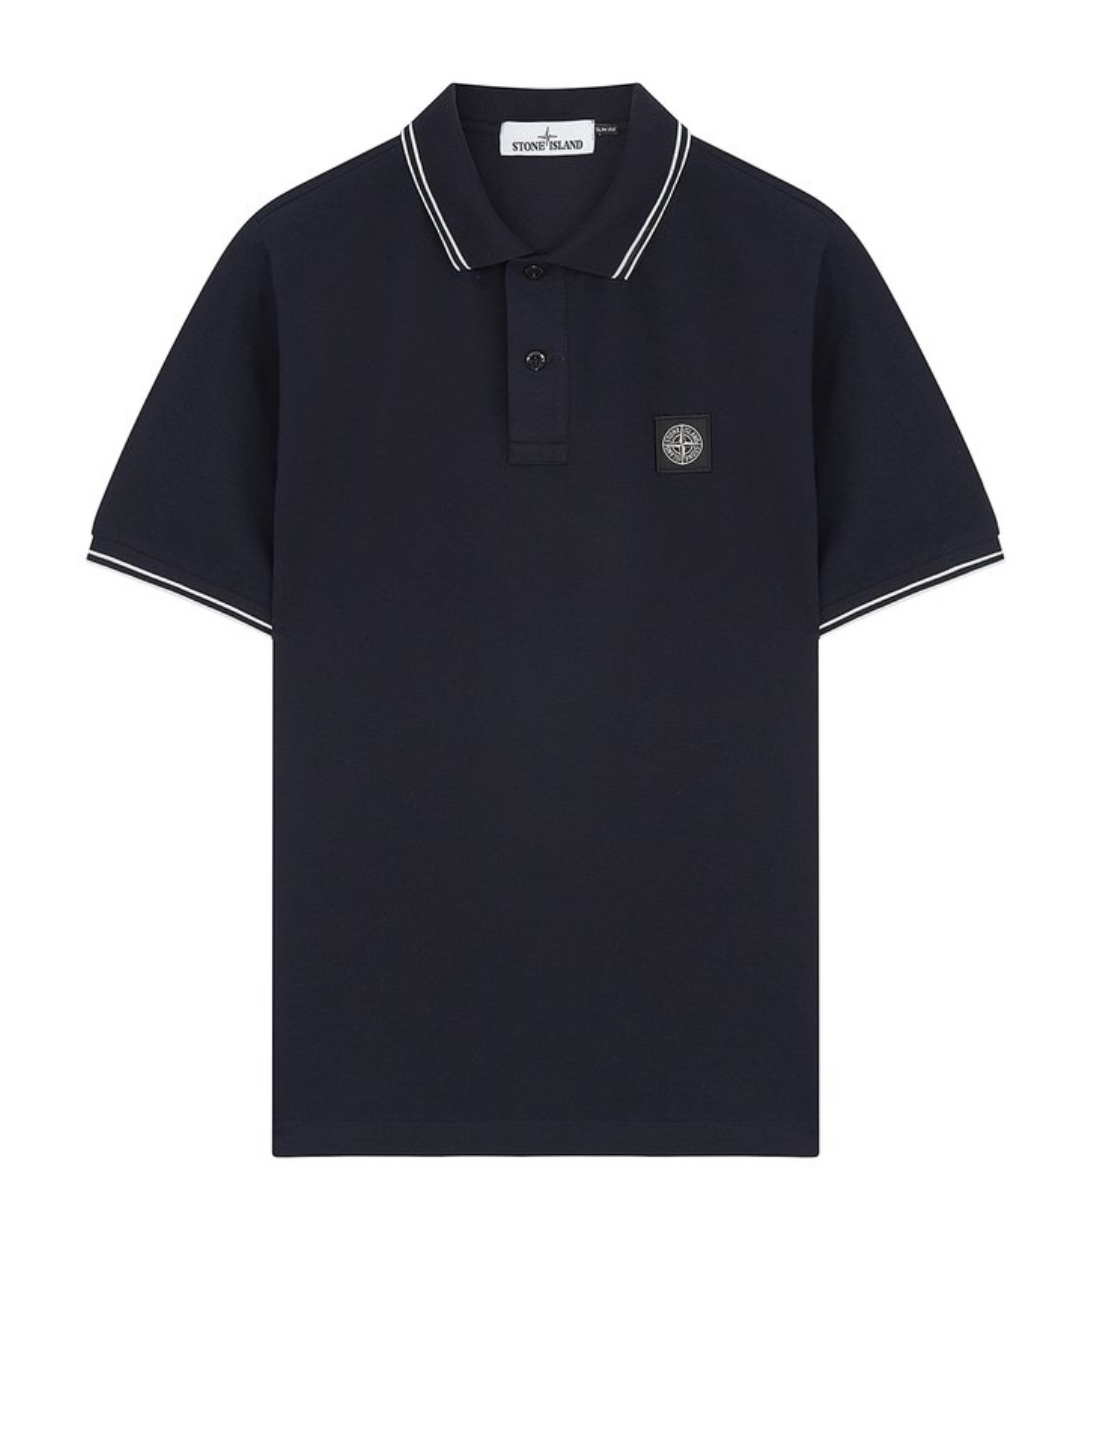 Polo Shirt In Navy Blue